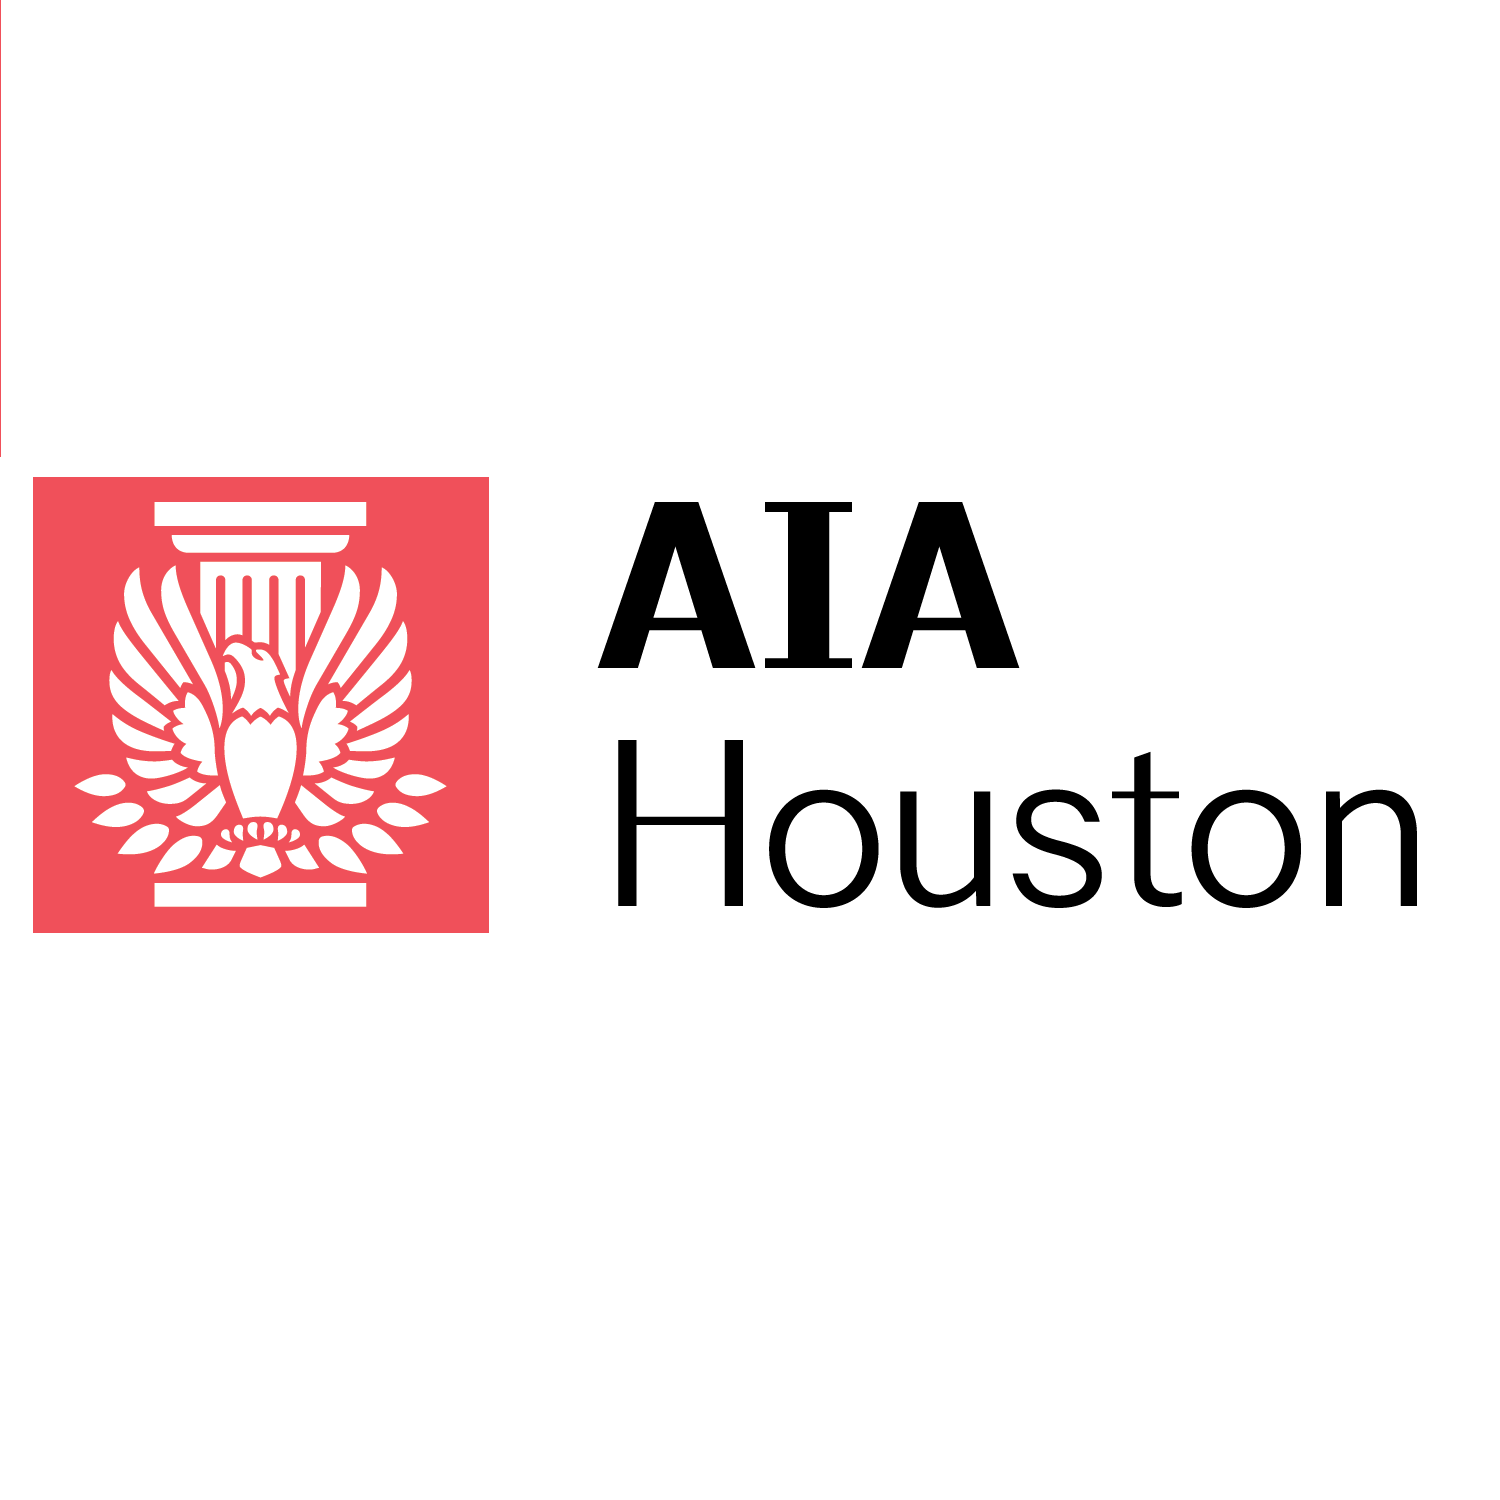 AIA Houston logo